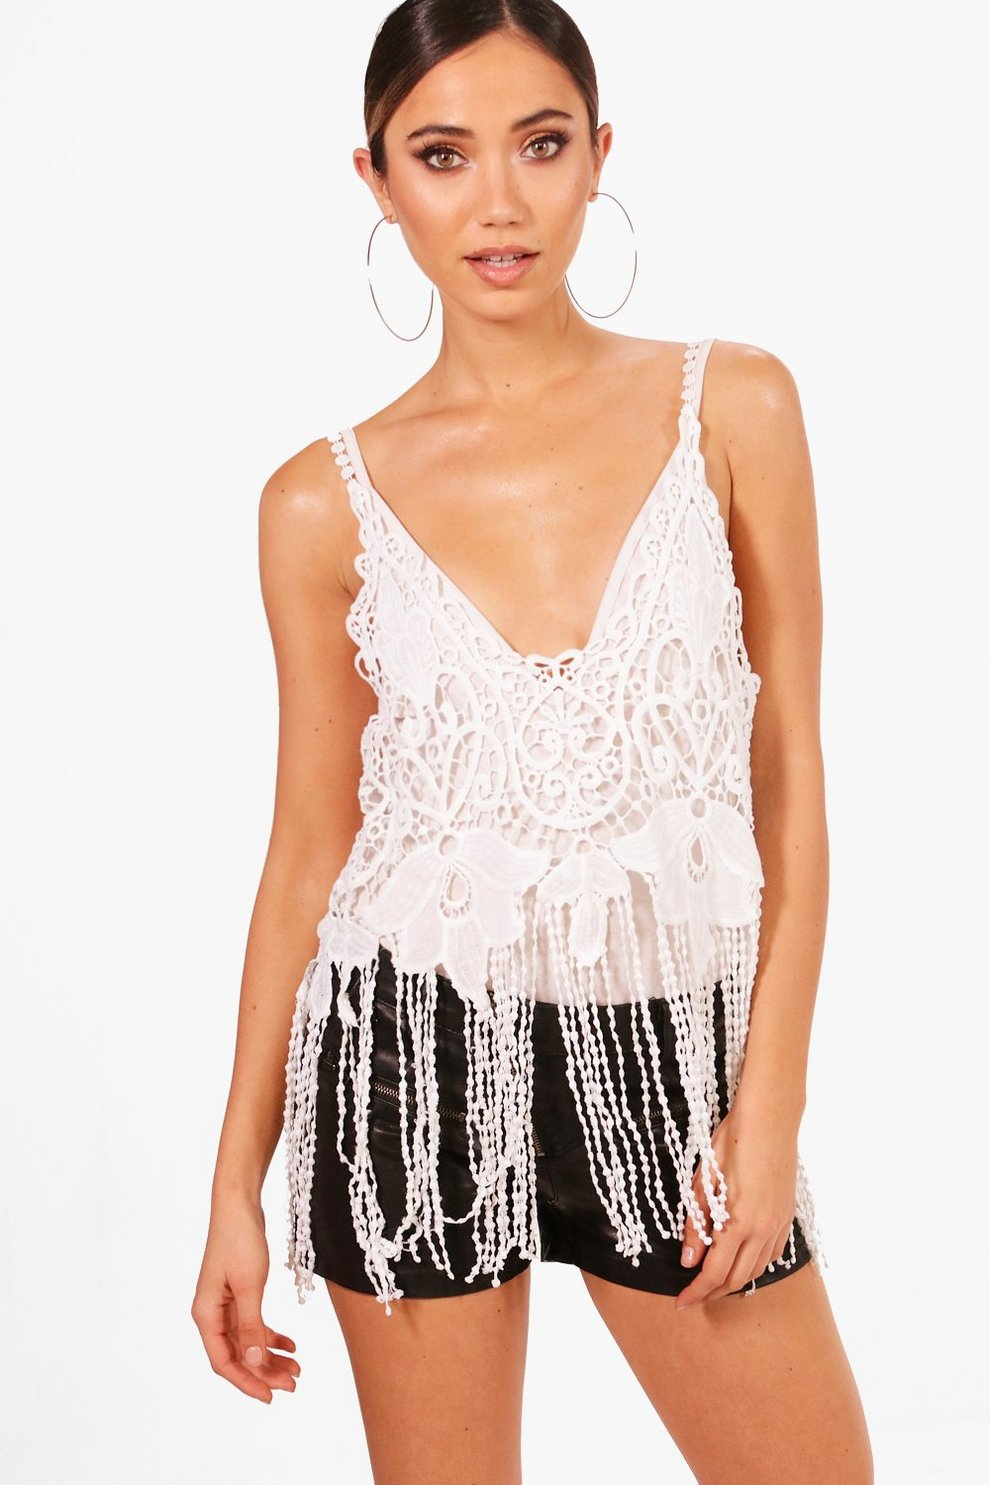 Boohoo Crochet Tassle Bralet Discount Purchase Free Shipping Discount Outlet Clearance Release Dates J2j9ZGshmE